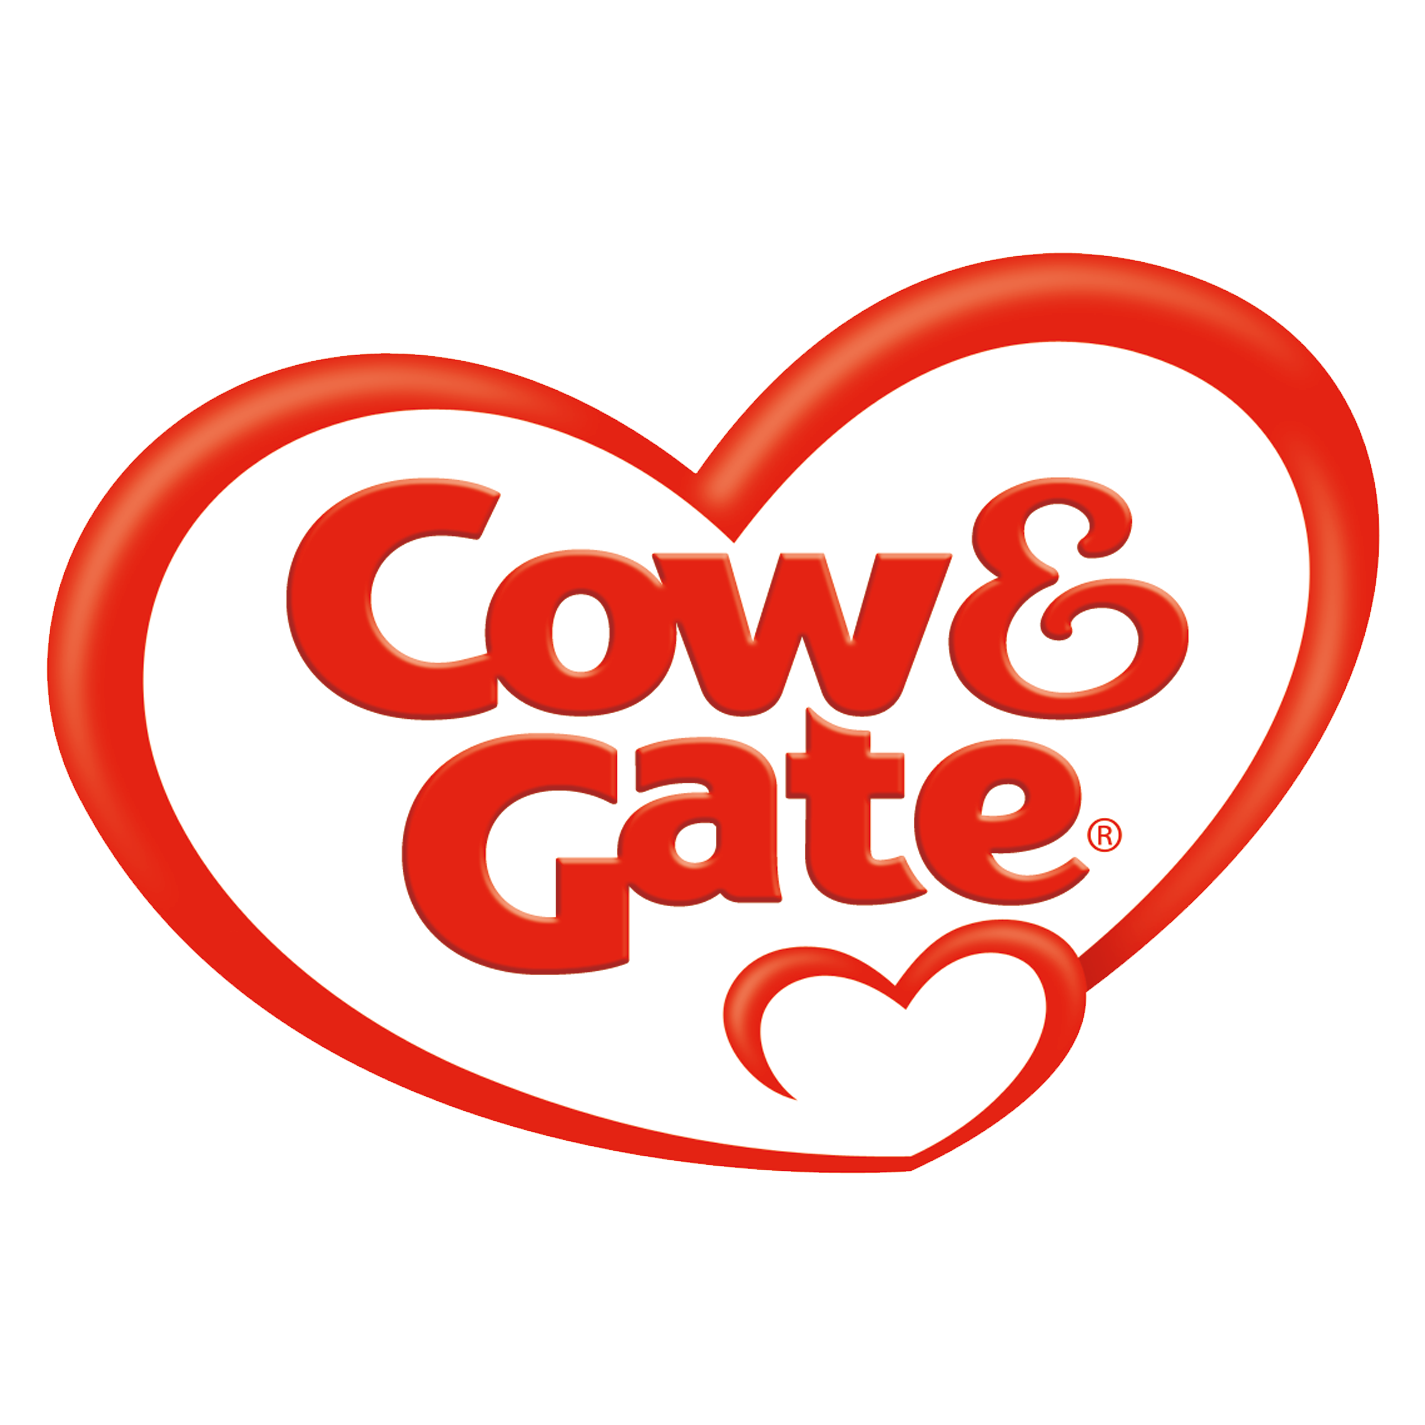 Cow and Gate Logo